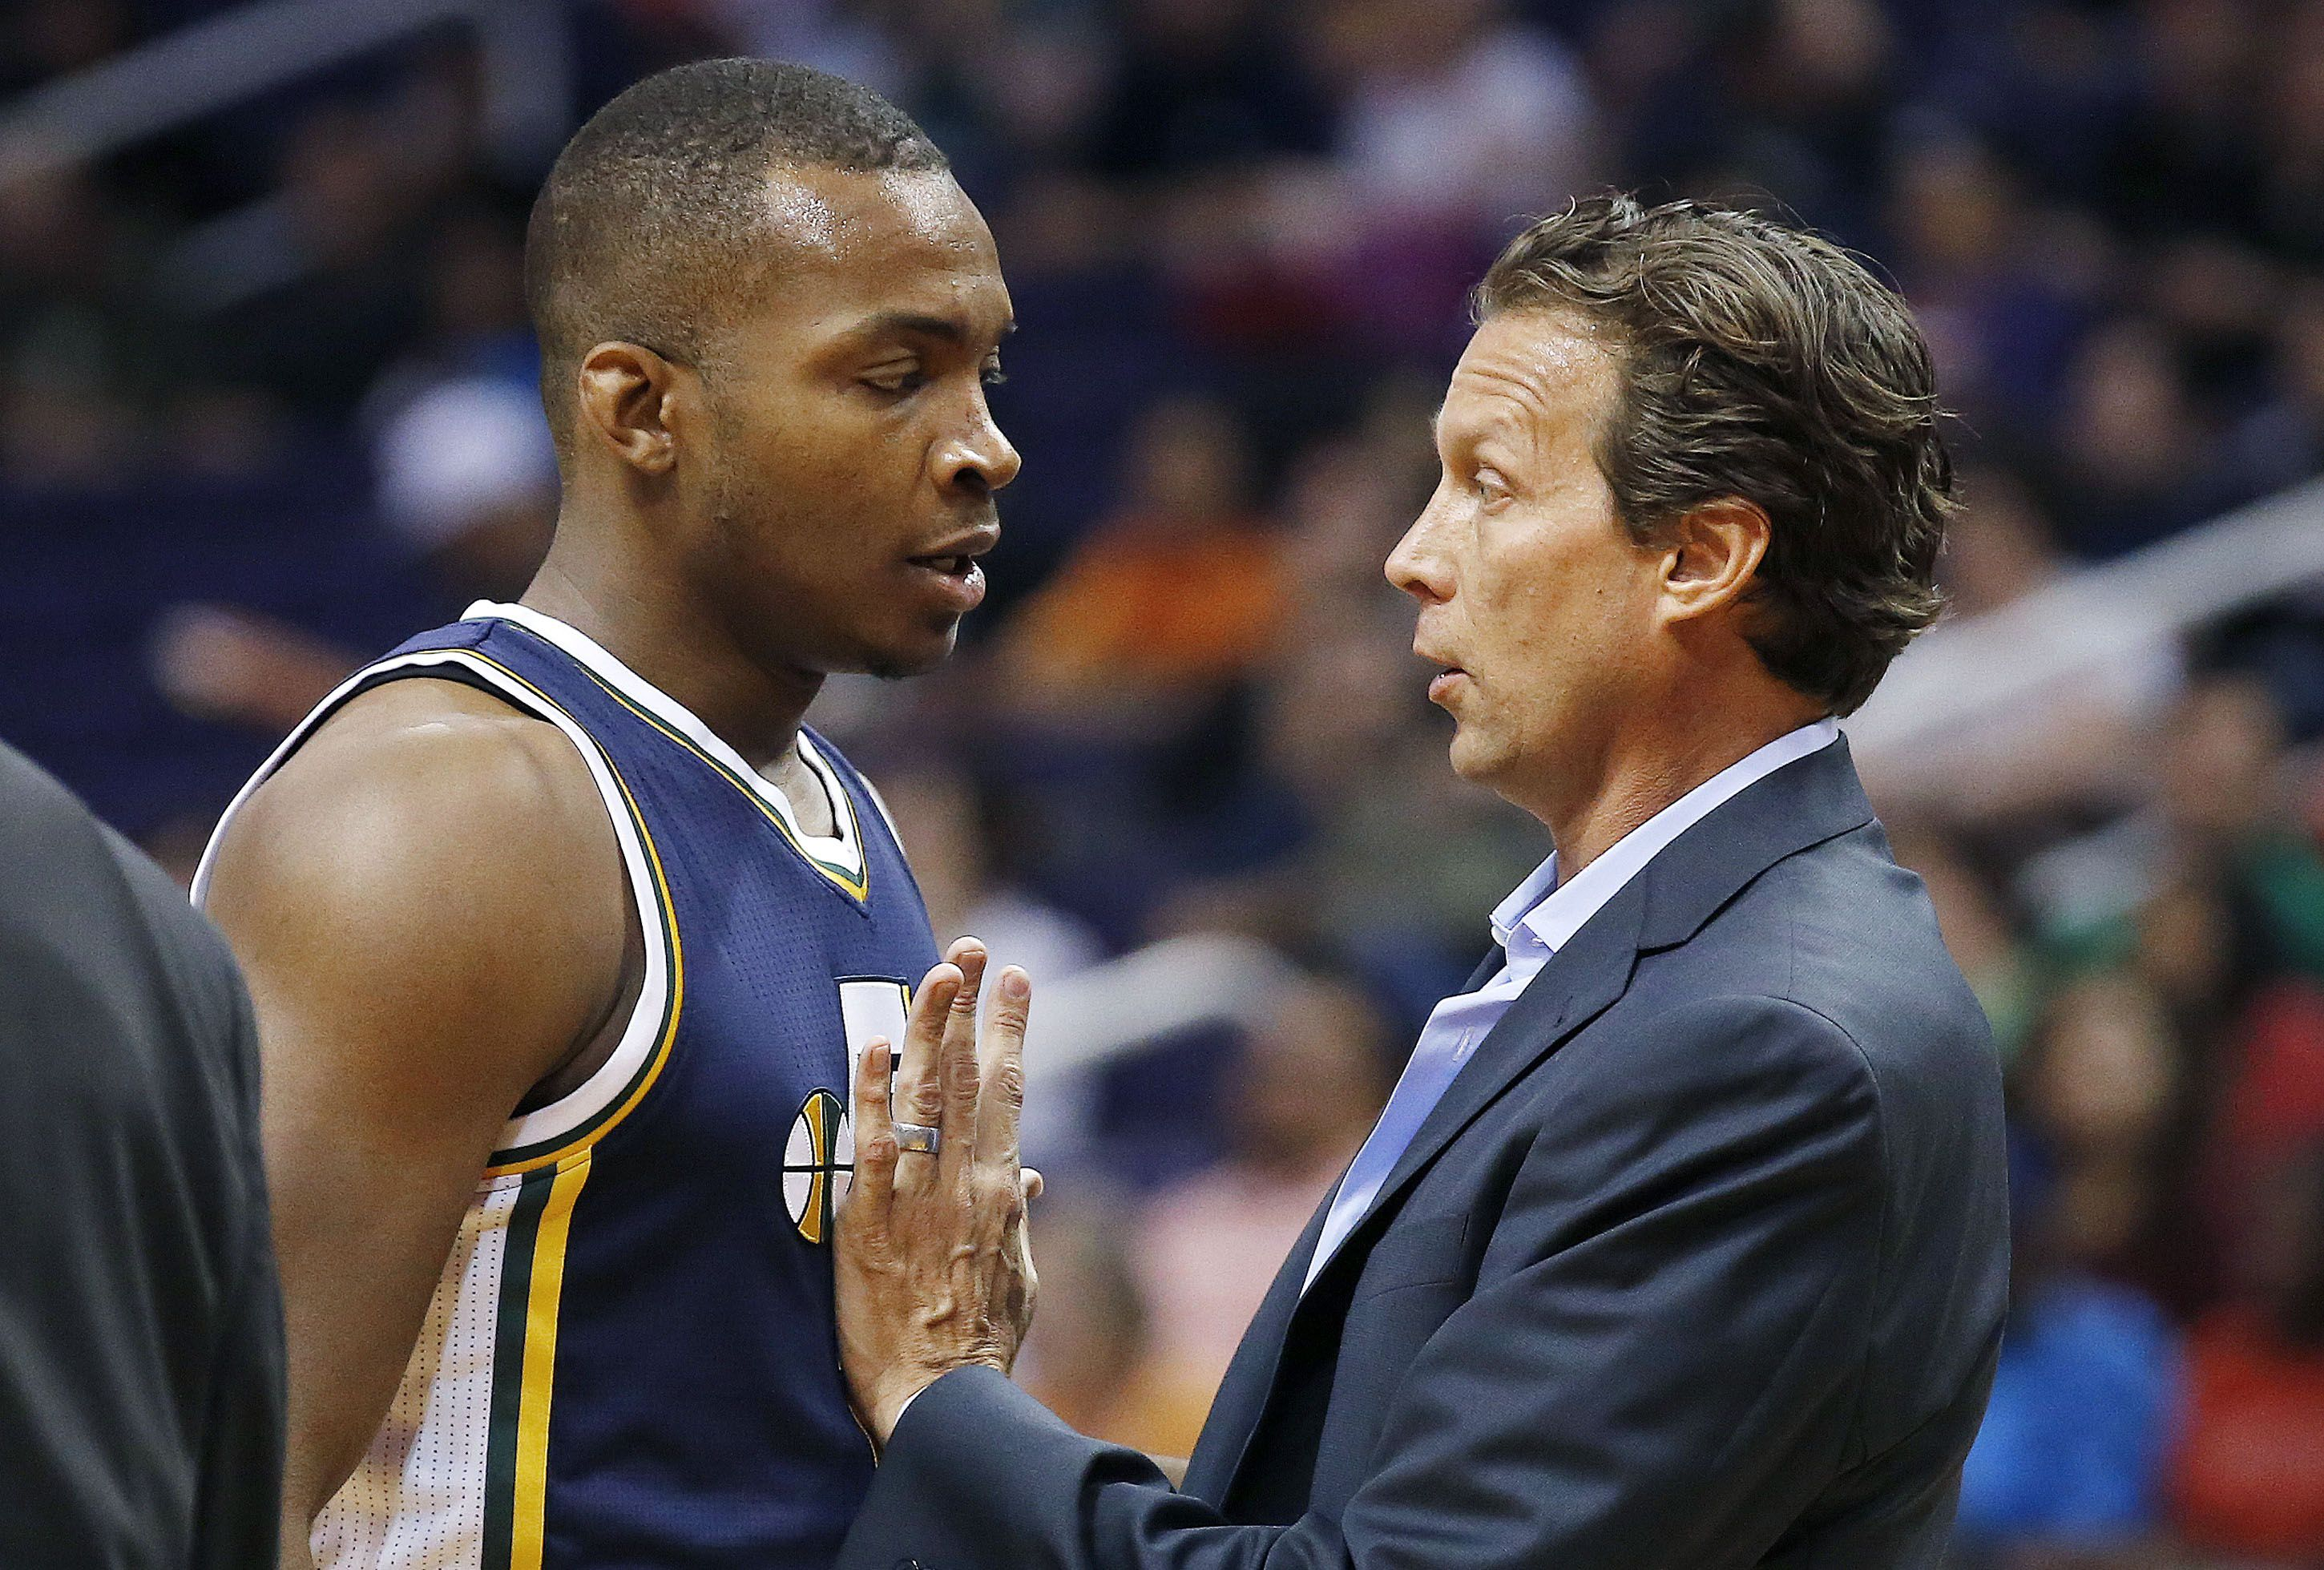 Utah Jazz head coach Quin Snyder, right, talks with Elijah Millsap during the first half of an NBA preseason basketball game against the Phoenix Suns, Friday, Oct. 9, 2015, in Phoenix. (AP Photo/Ross D. Franklin)